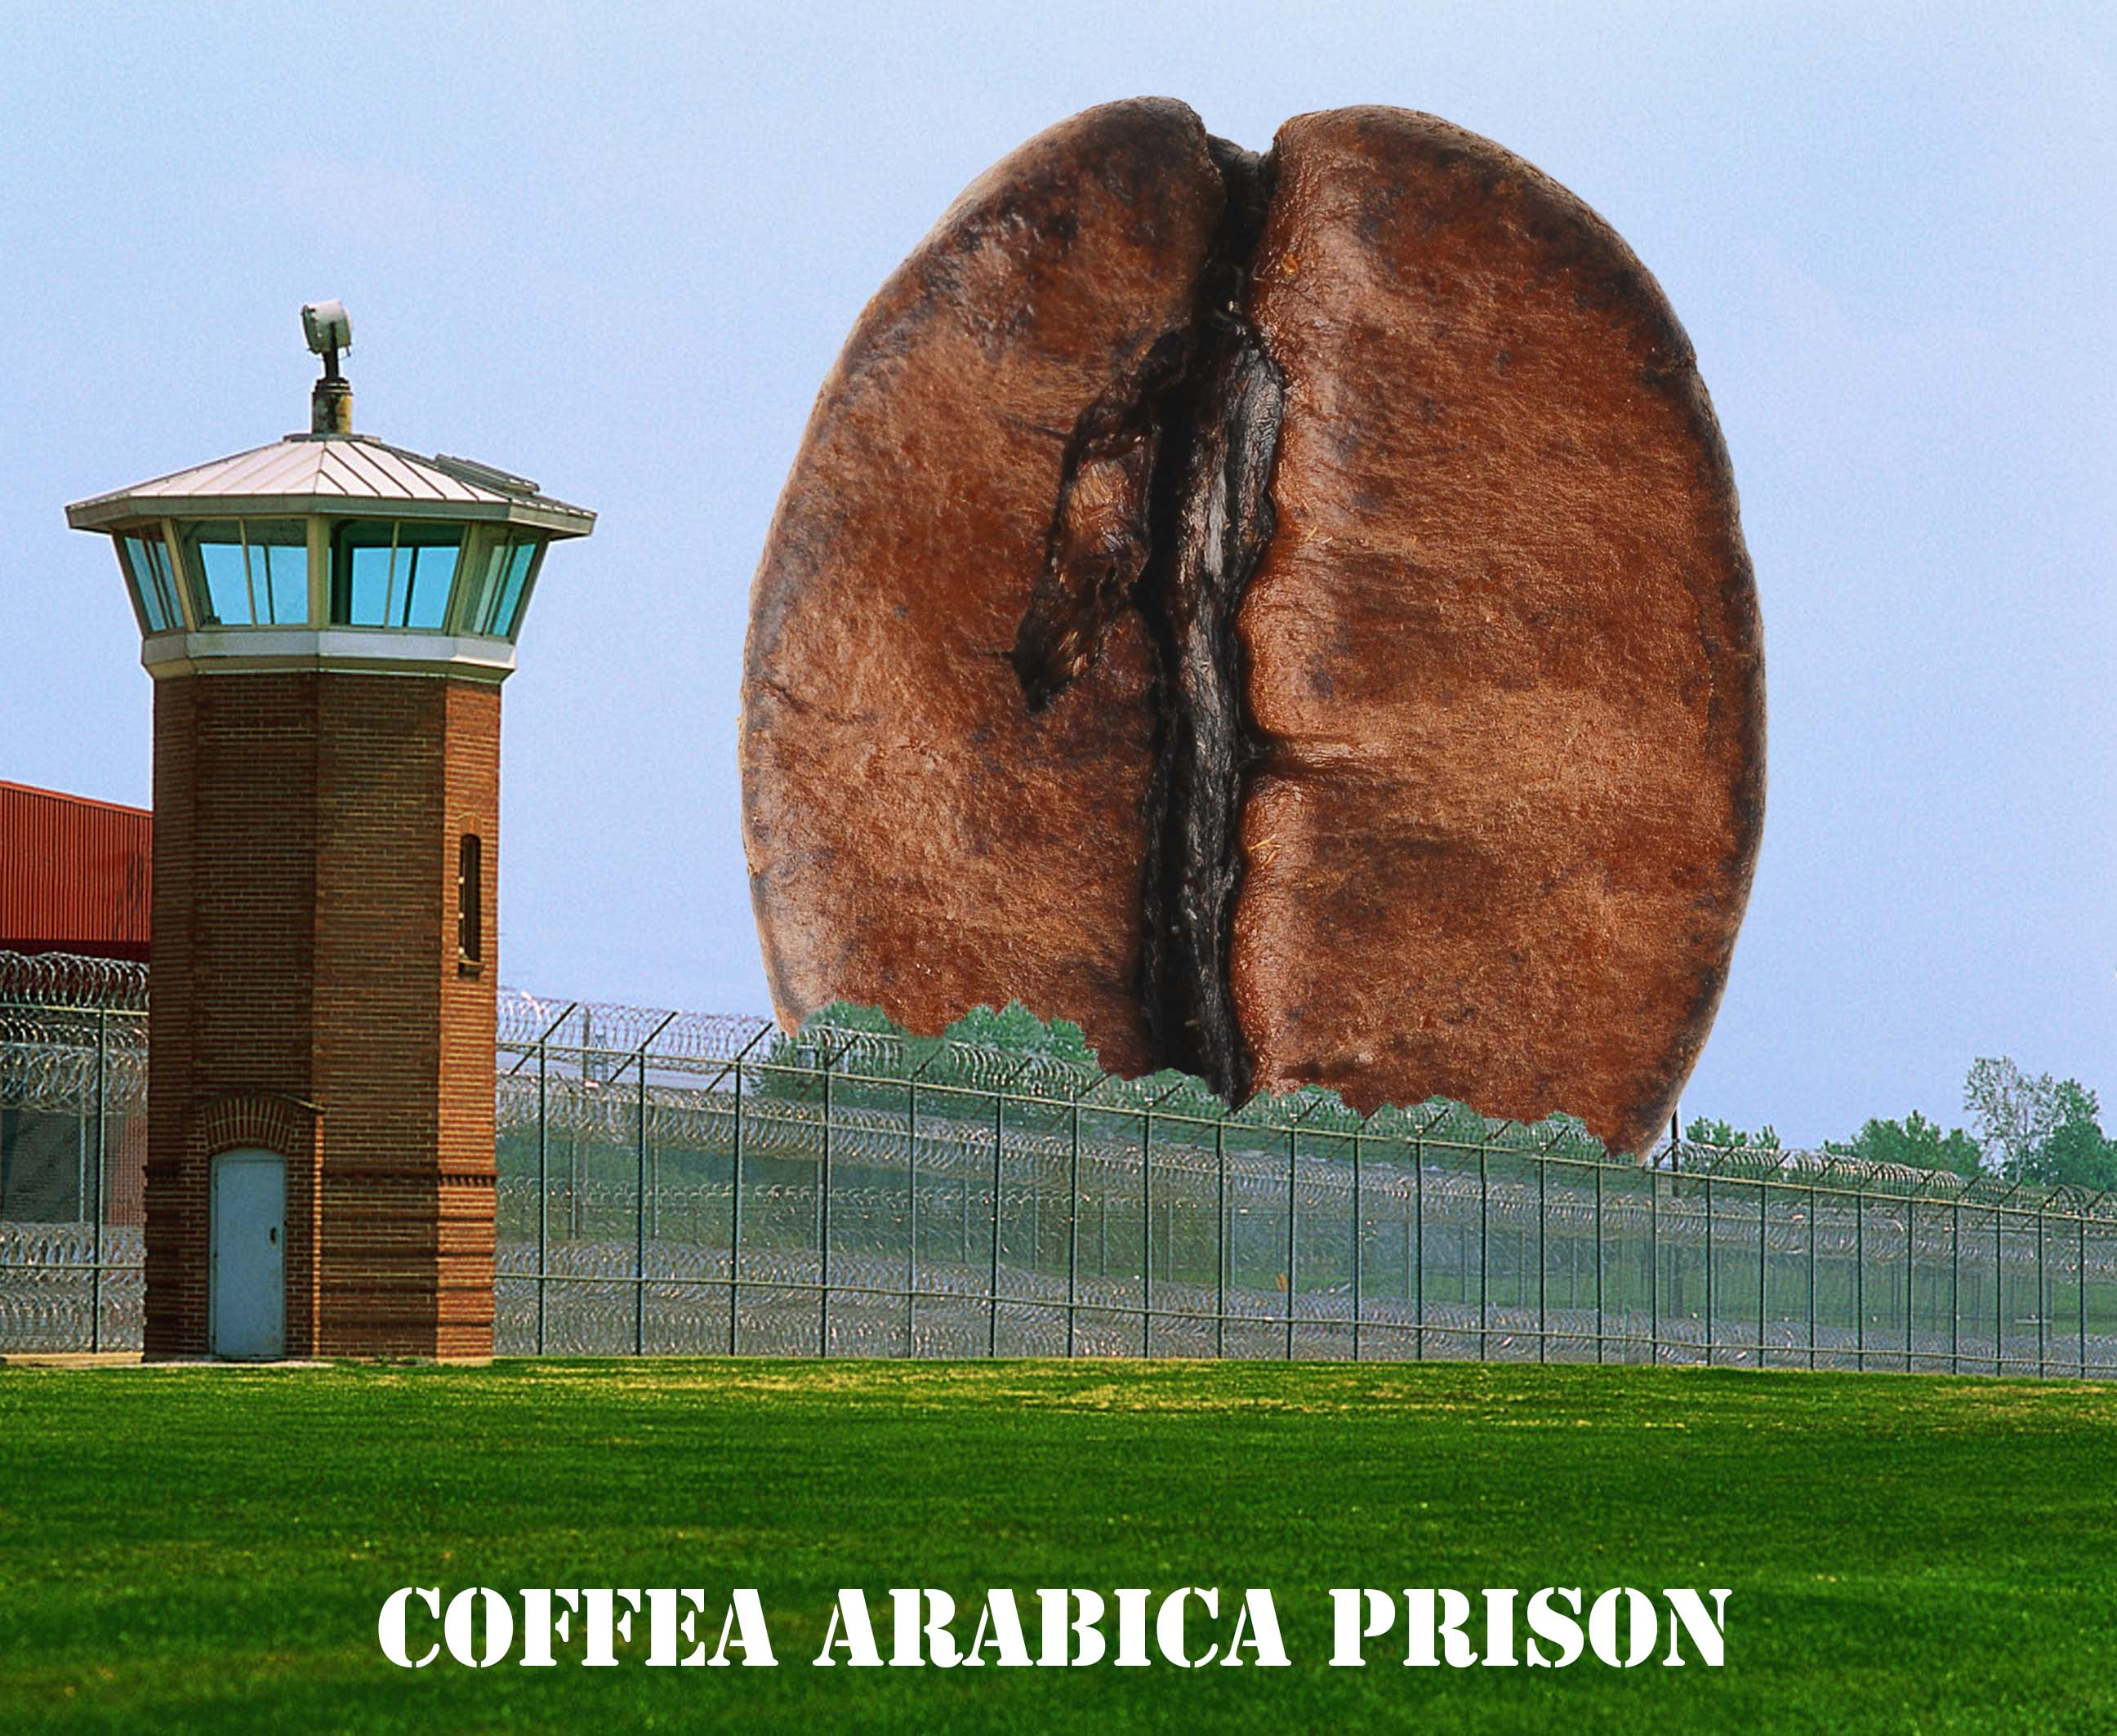 A large coffee bean in prison. Coffee beans are like prisons for flavor compounds